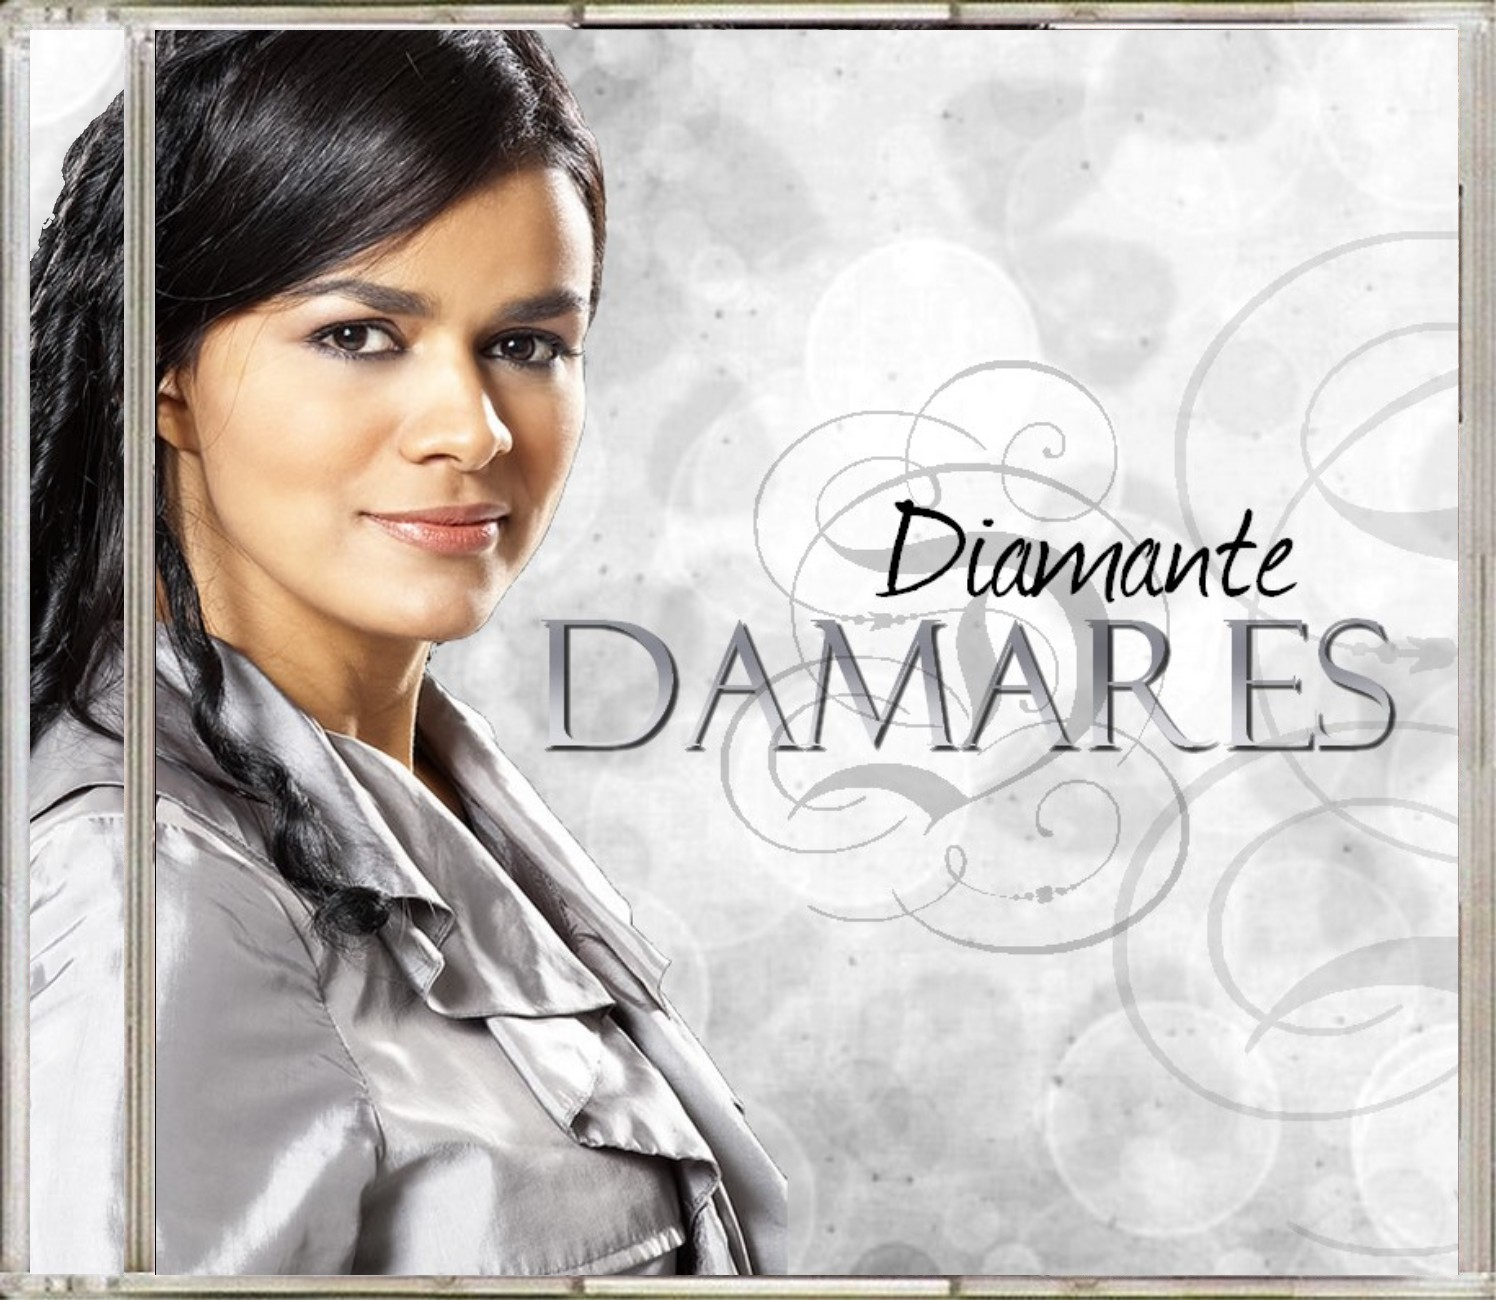 Baixar CD DAMARES+DIAMANTE Damares   Diamante